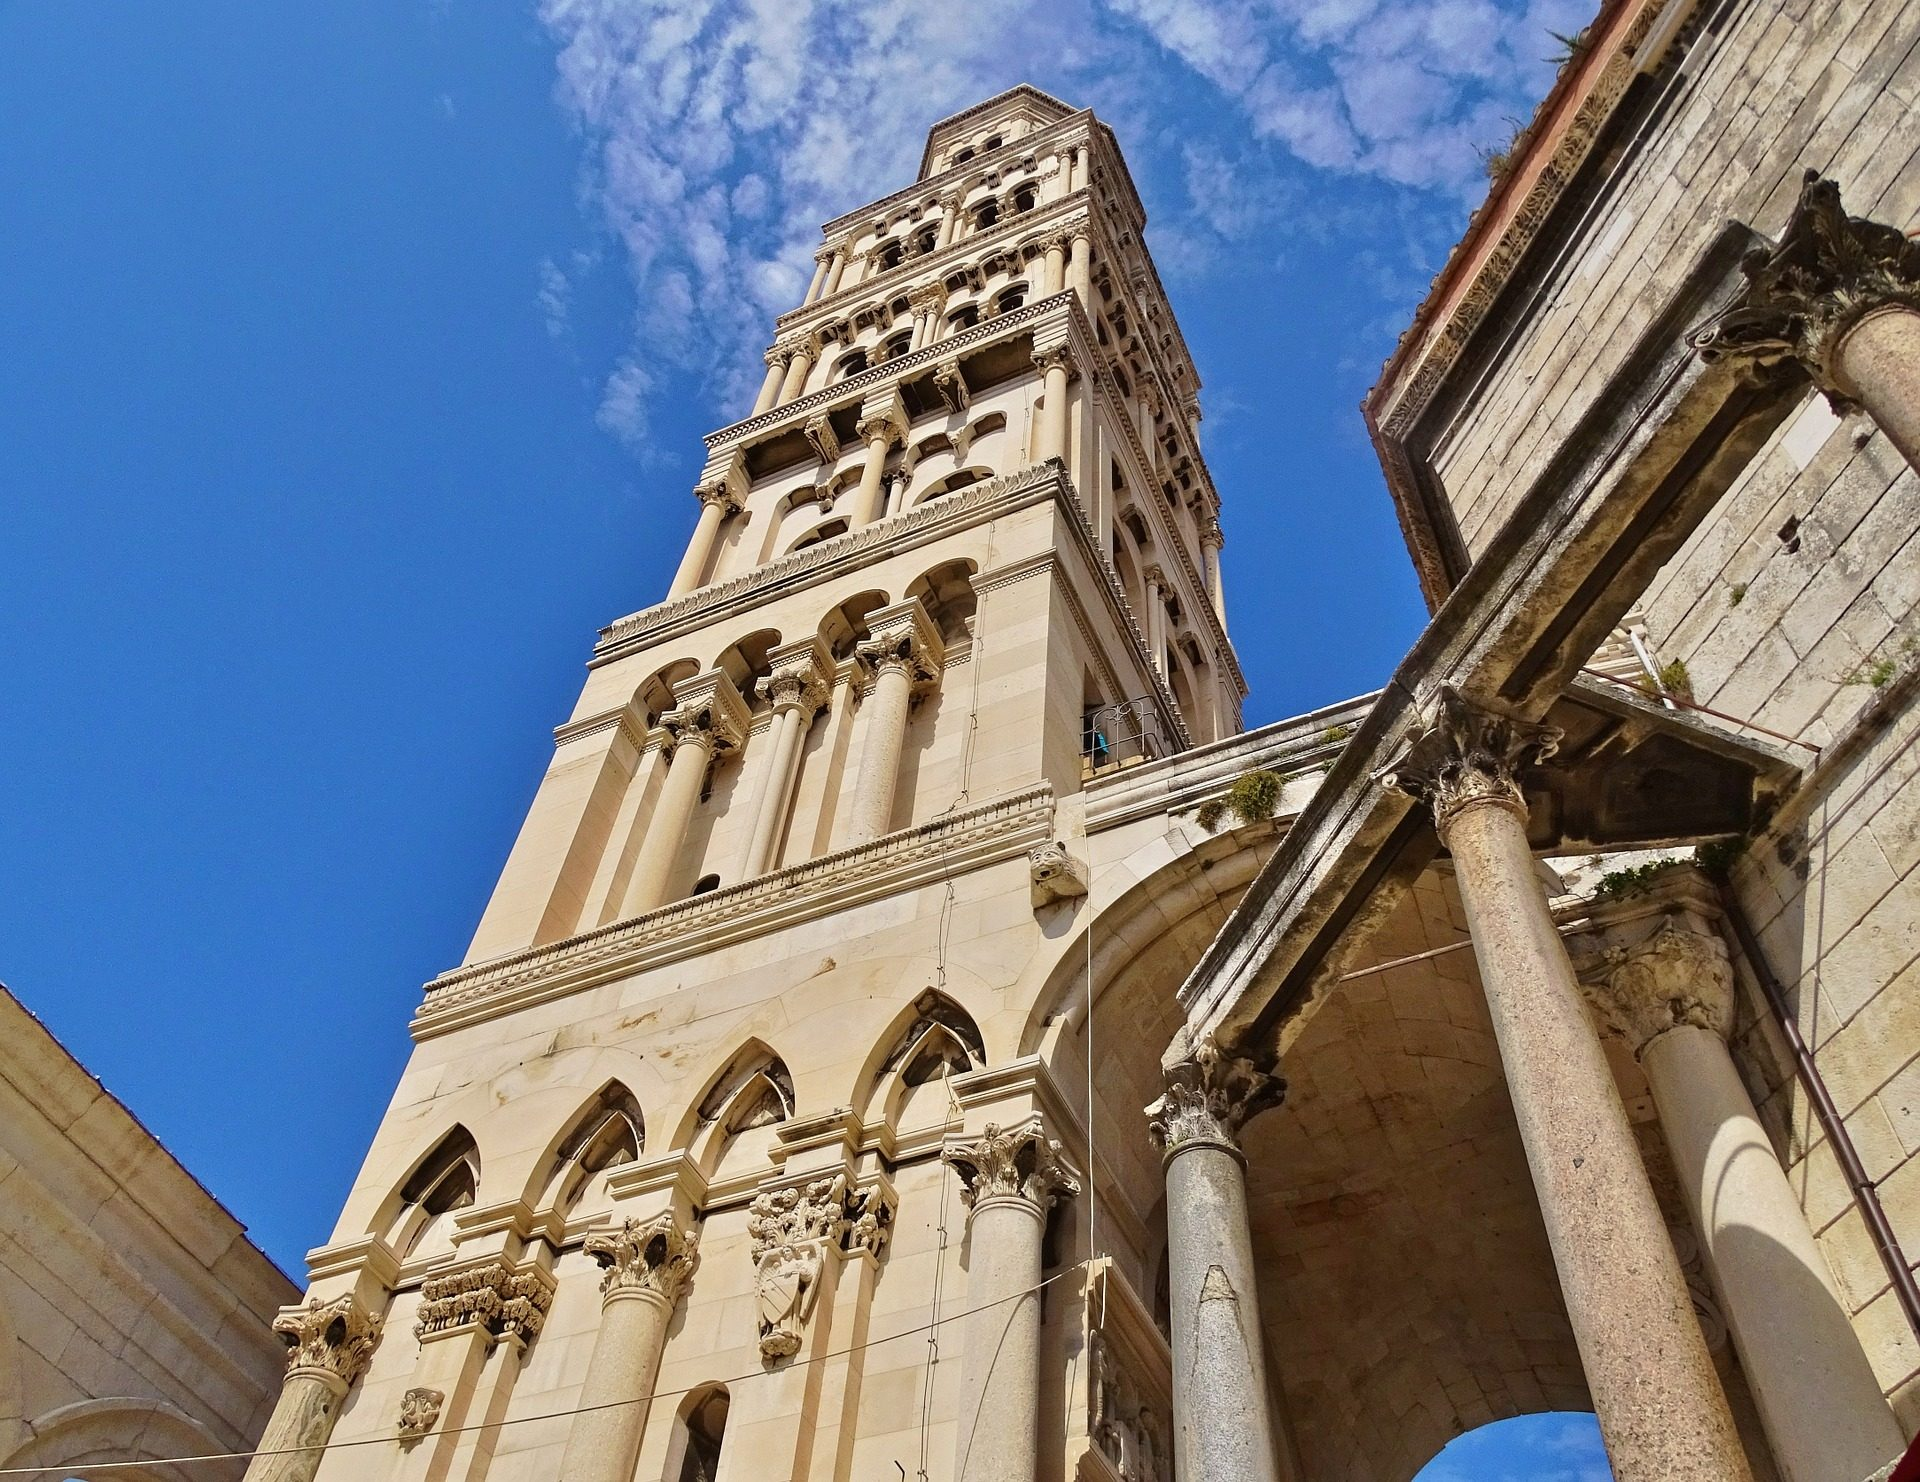 diocletian palace and cathedral of saint domnius